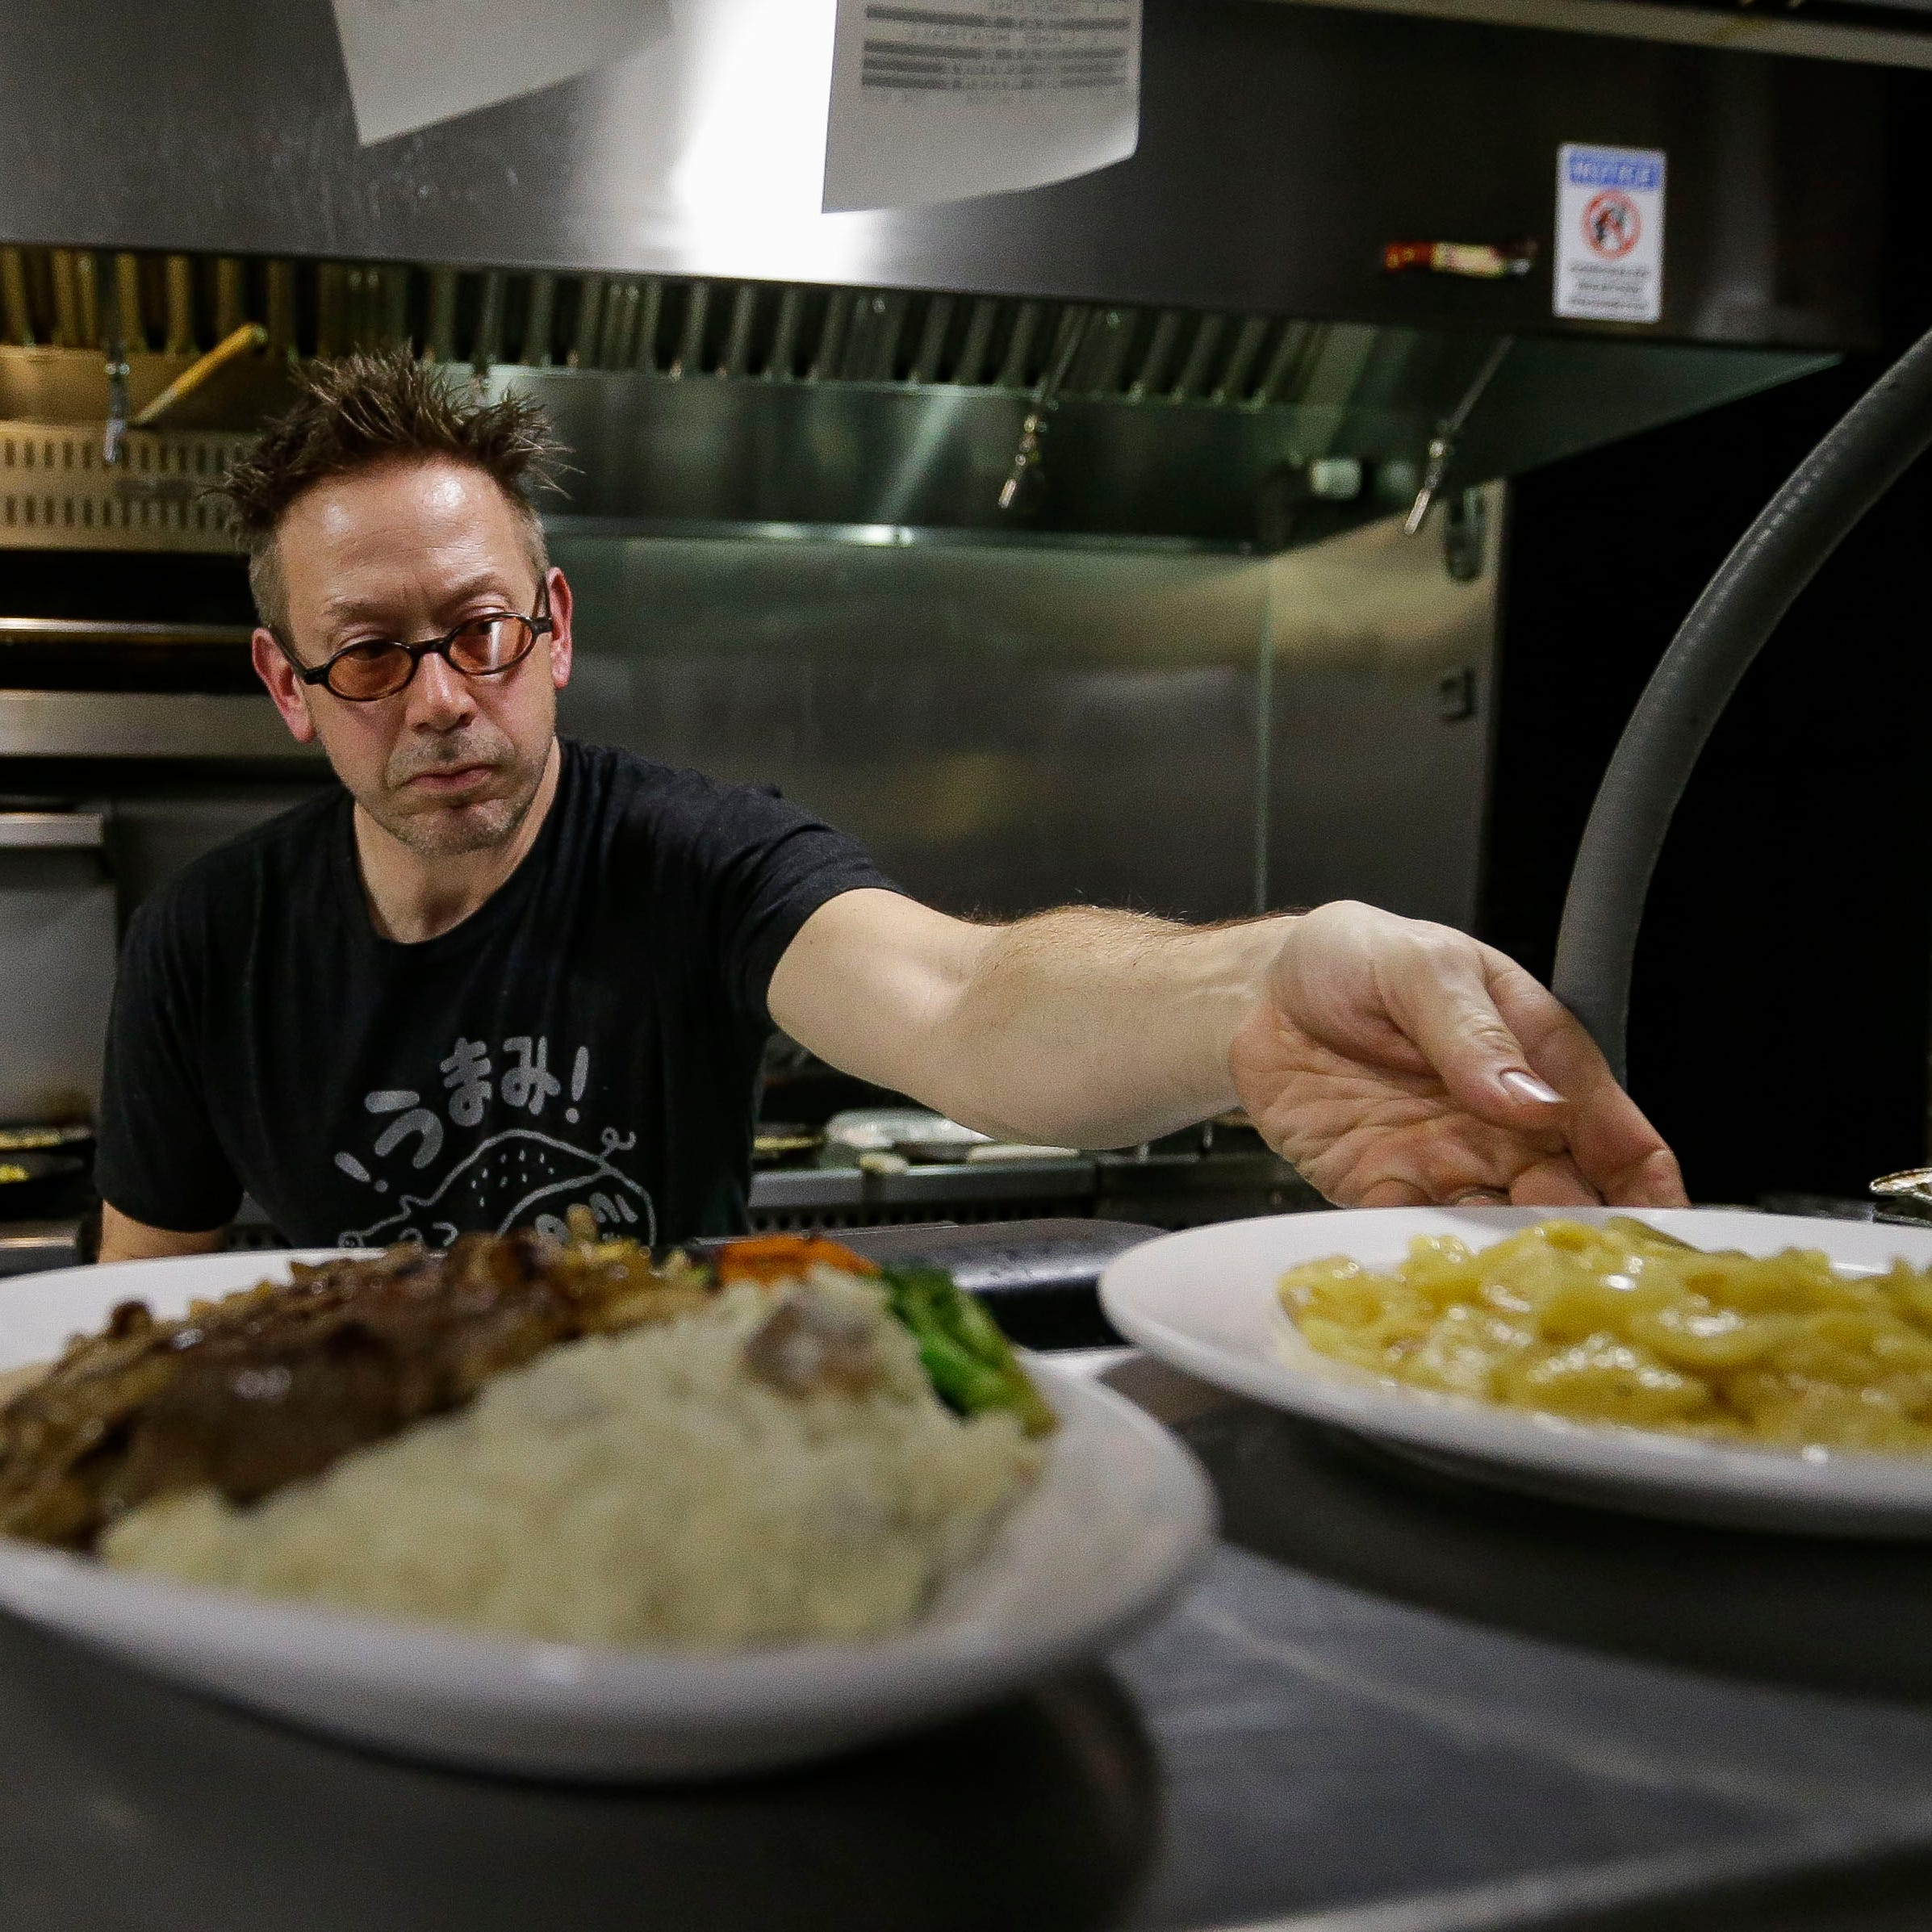 Chef's Kitchen opens in downtown Stevens Point; rotating menu now features Italian